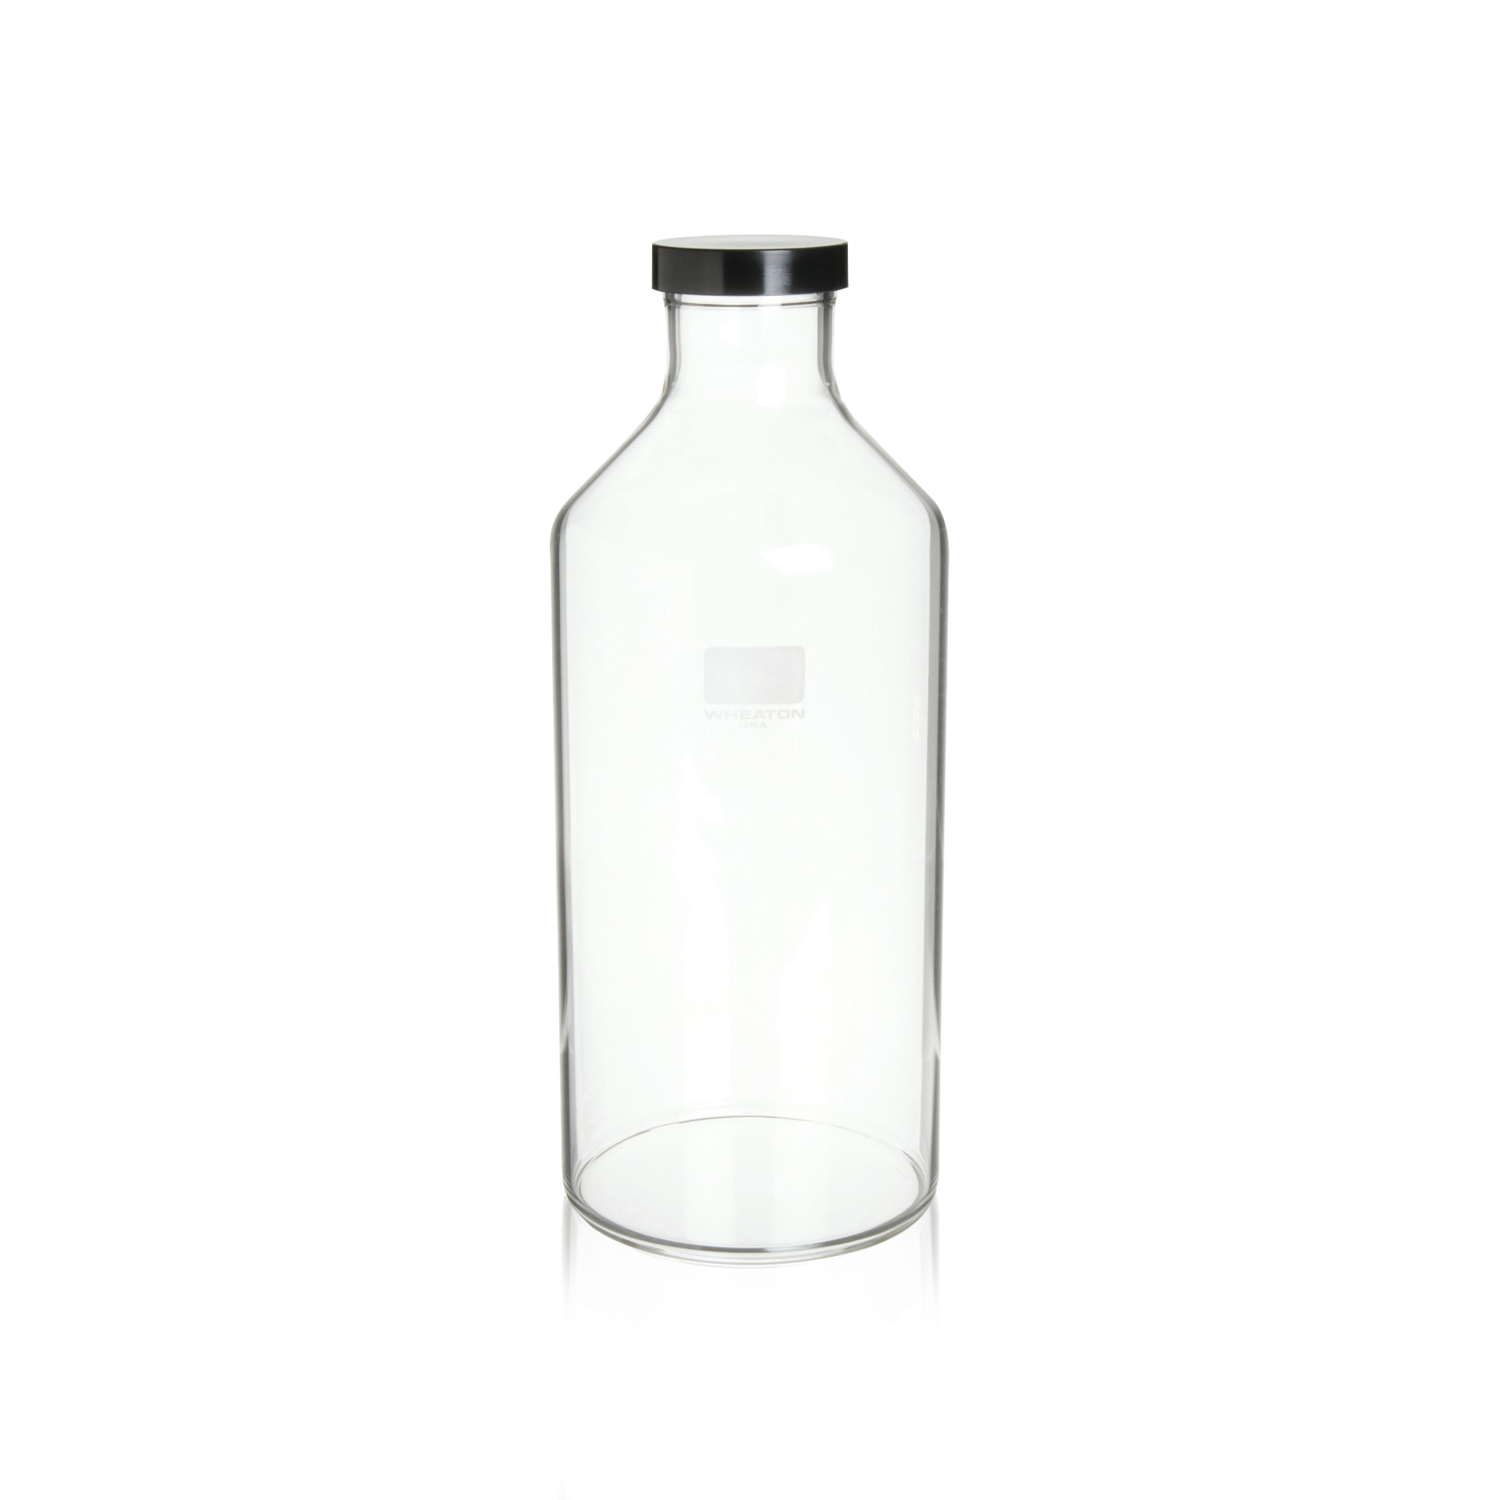 WHEATON® Roller bottle With 51mm Black Phenolic Screw Cap With Shallow Skirt and White Styrene-butadiene Rubber Liner (GPI 51-400), 4230 mL